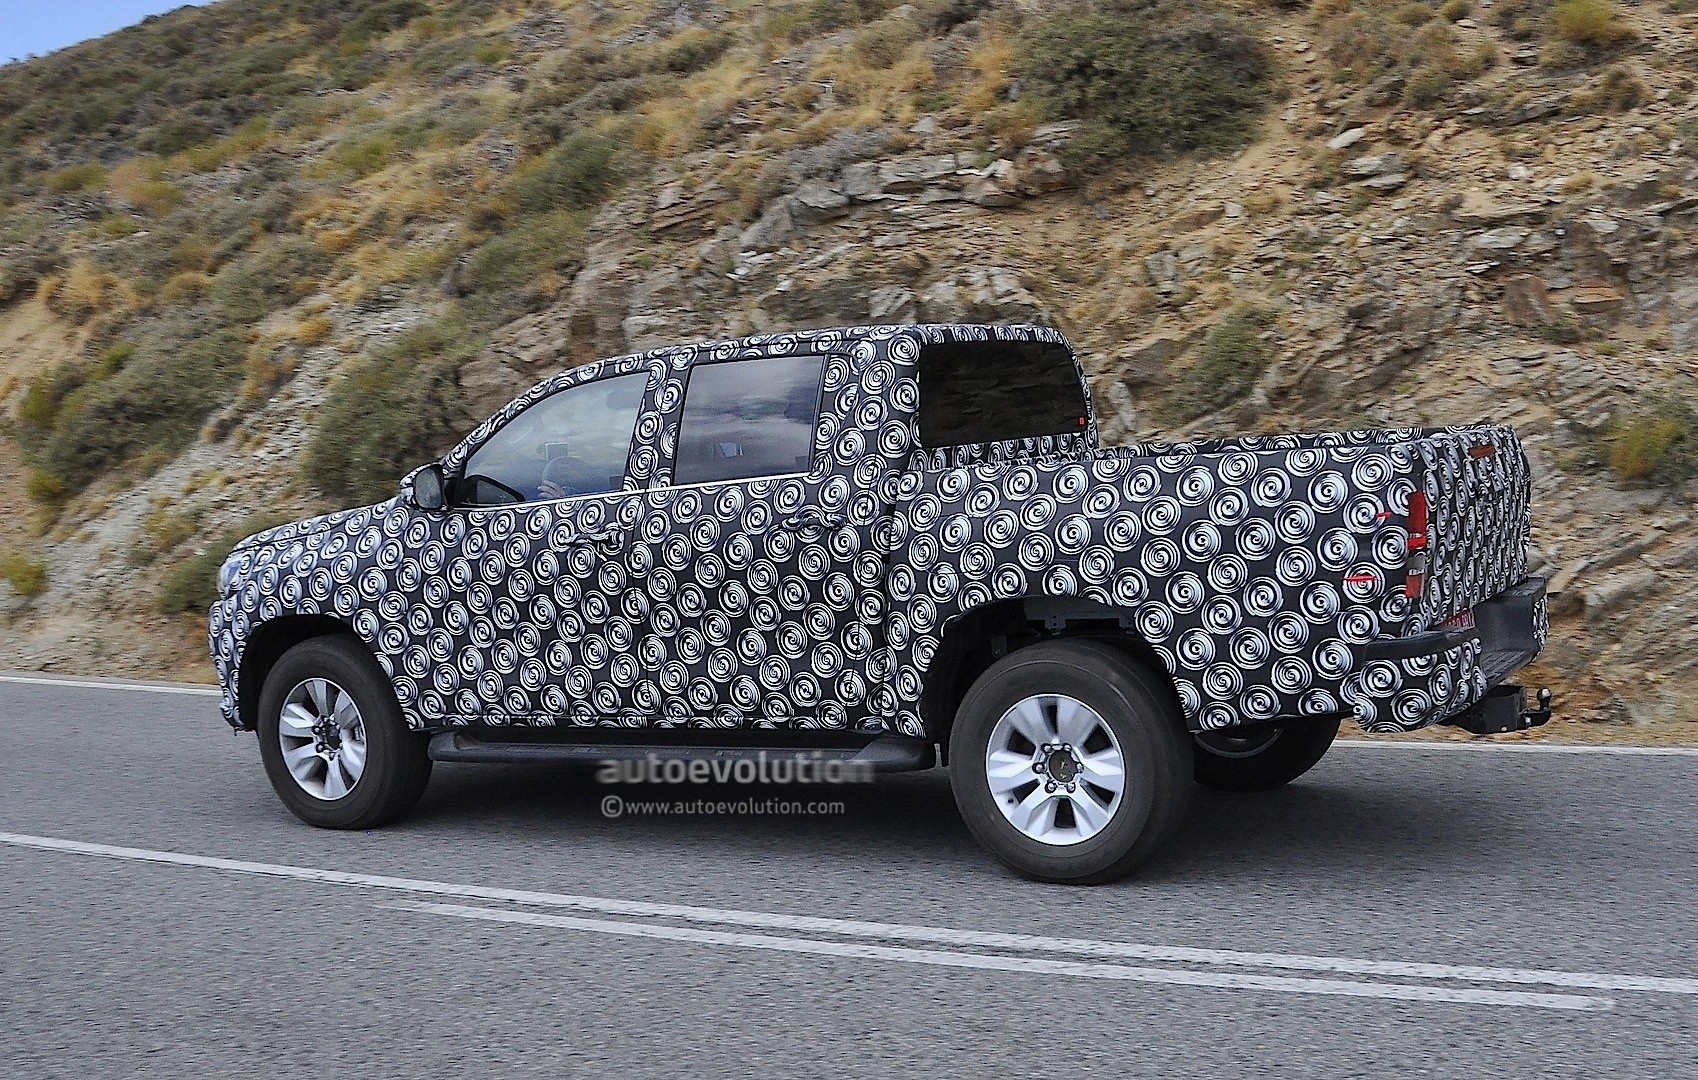 2016 Toyota Hilux Pickup Truck Spied Completely ...